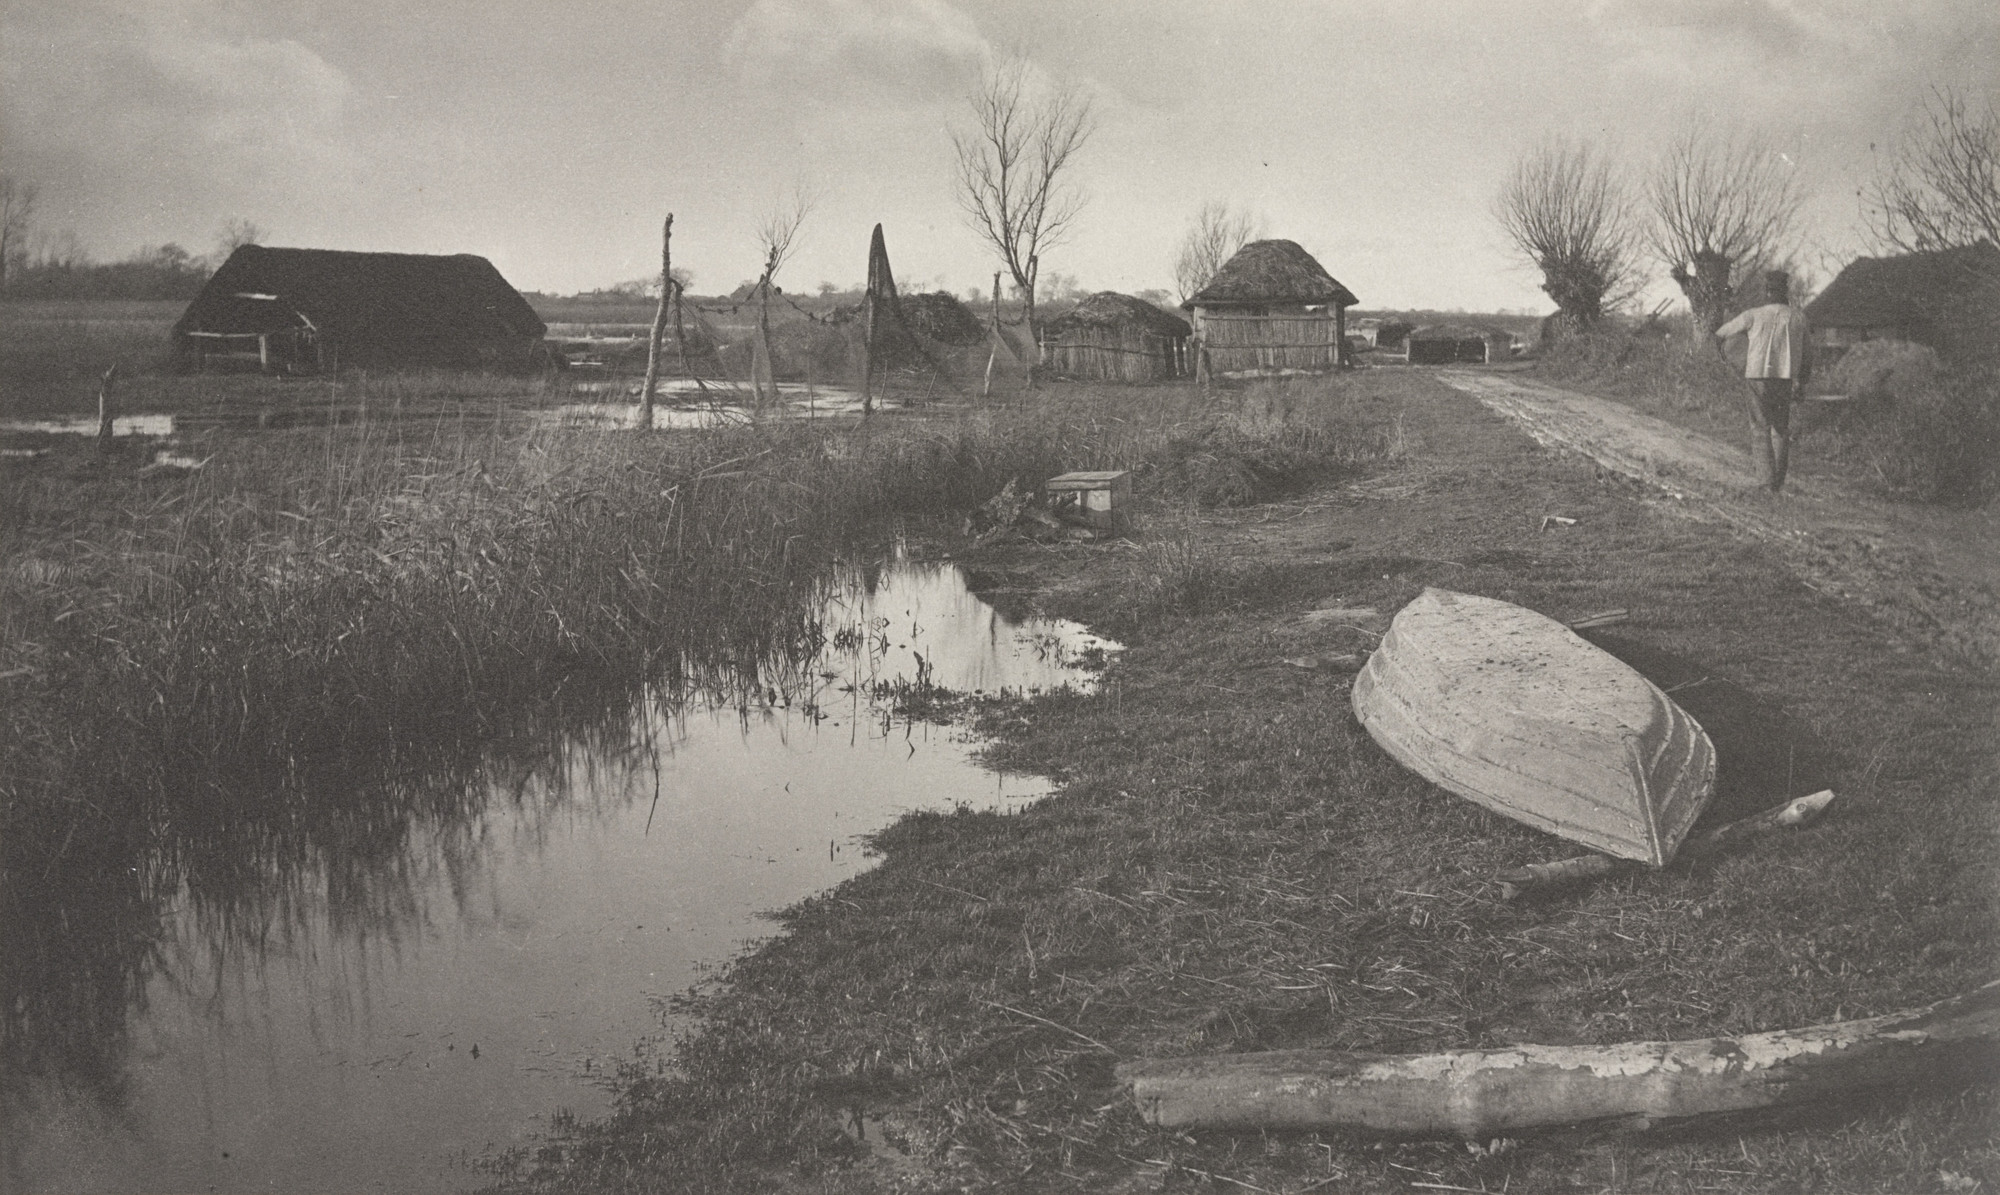 Peter Henry Emerson, T. F. Goodall. 'Twixt Land and Water from Life and Landscape on the Norfolk Broads (London, 1886). c. 1885